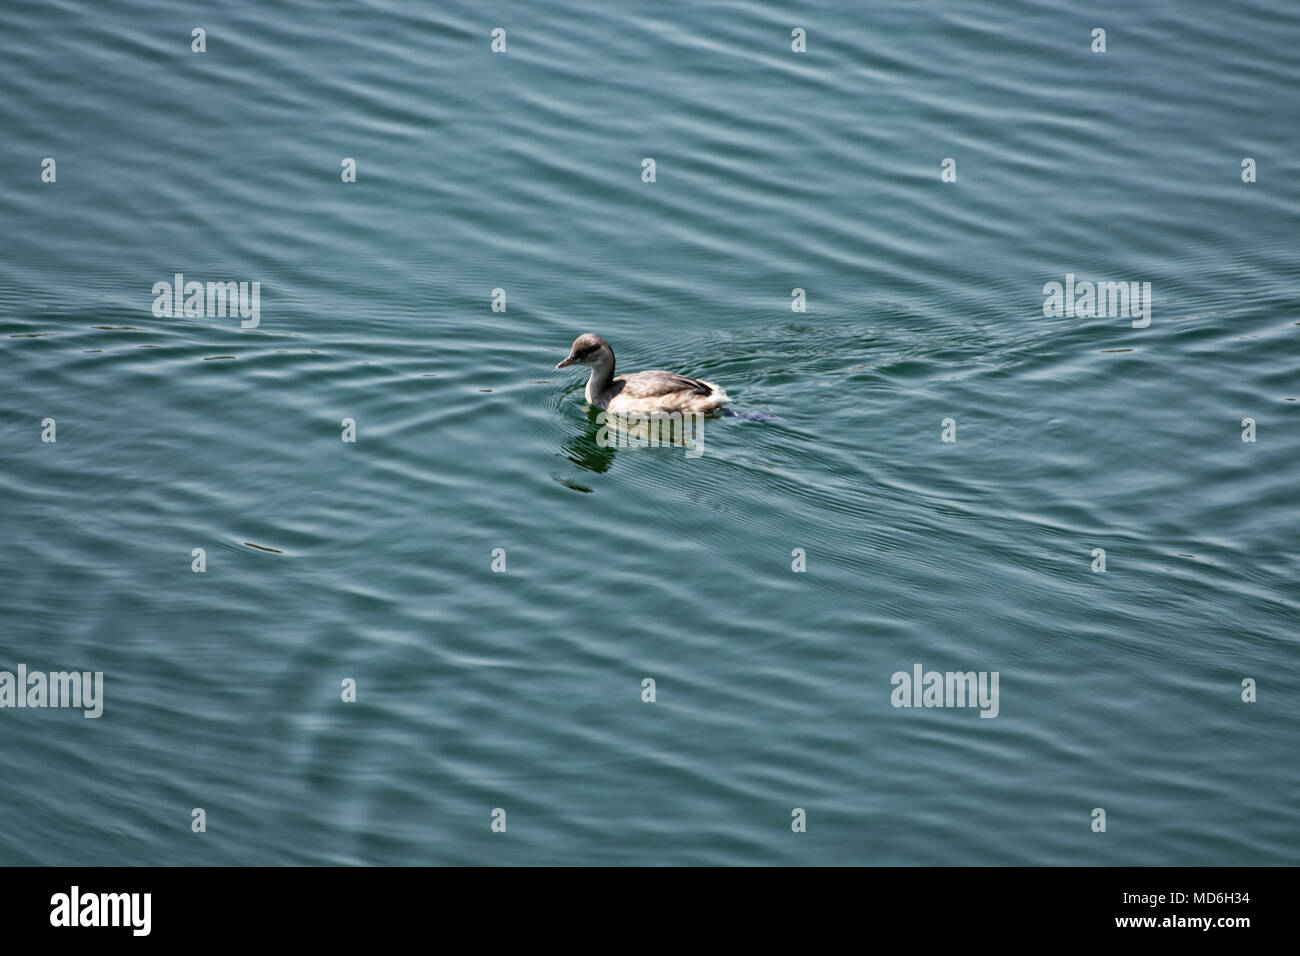 A small duck swimming  & playing in a  water reservoir looking beautiful. Stock Photo